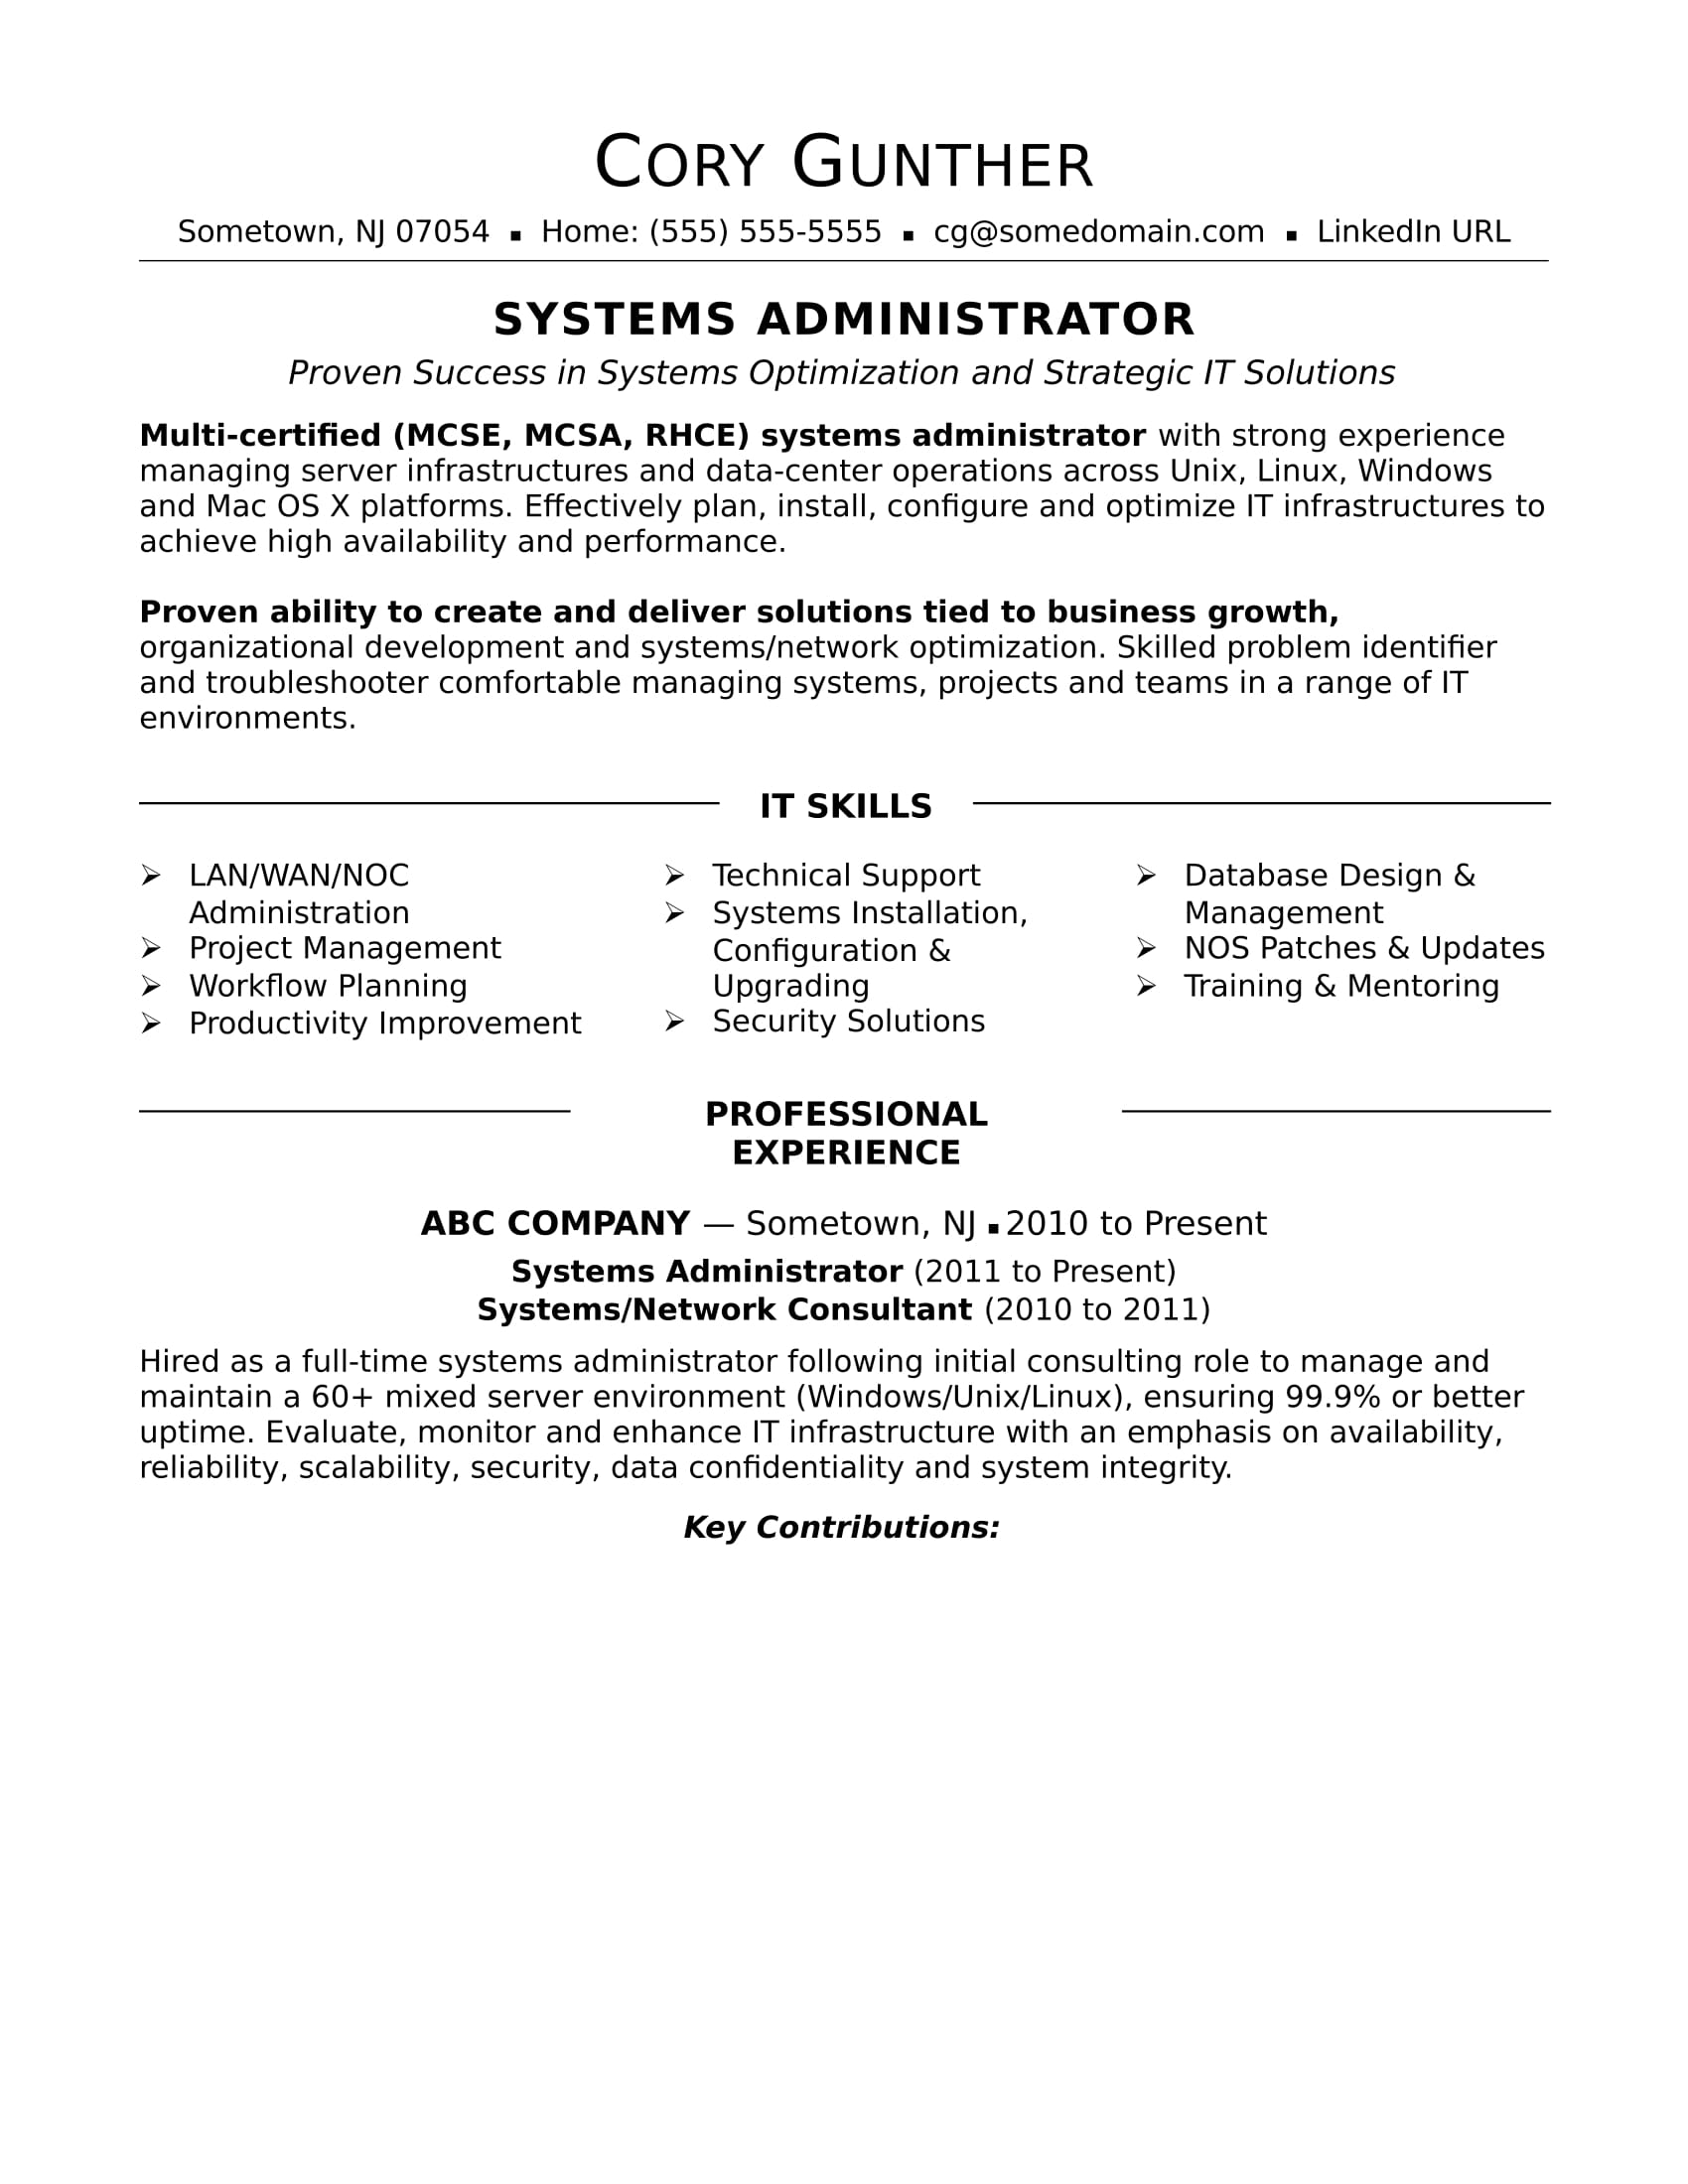 Sample Resume For An Experienced Systems Administrator  Resume Company